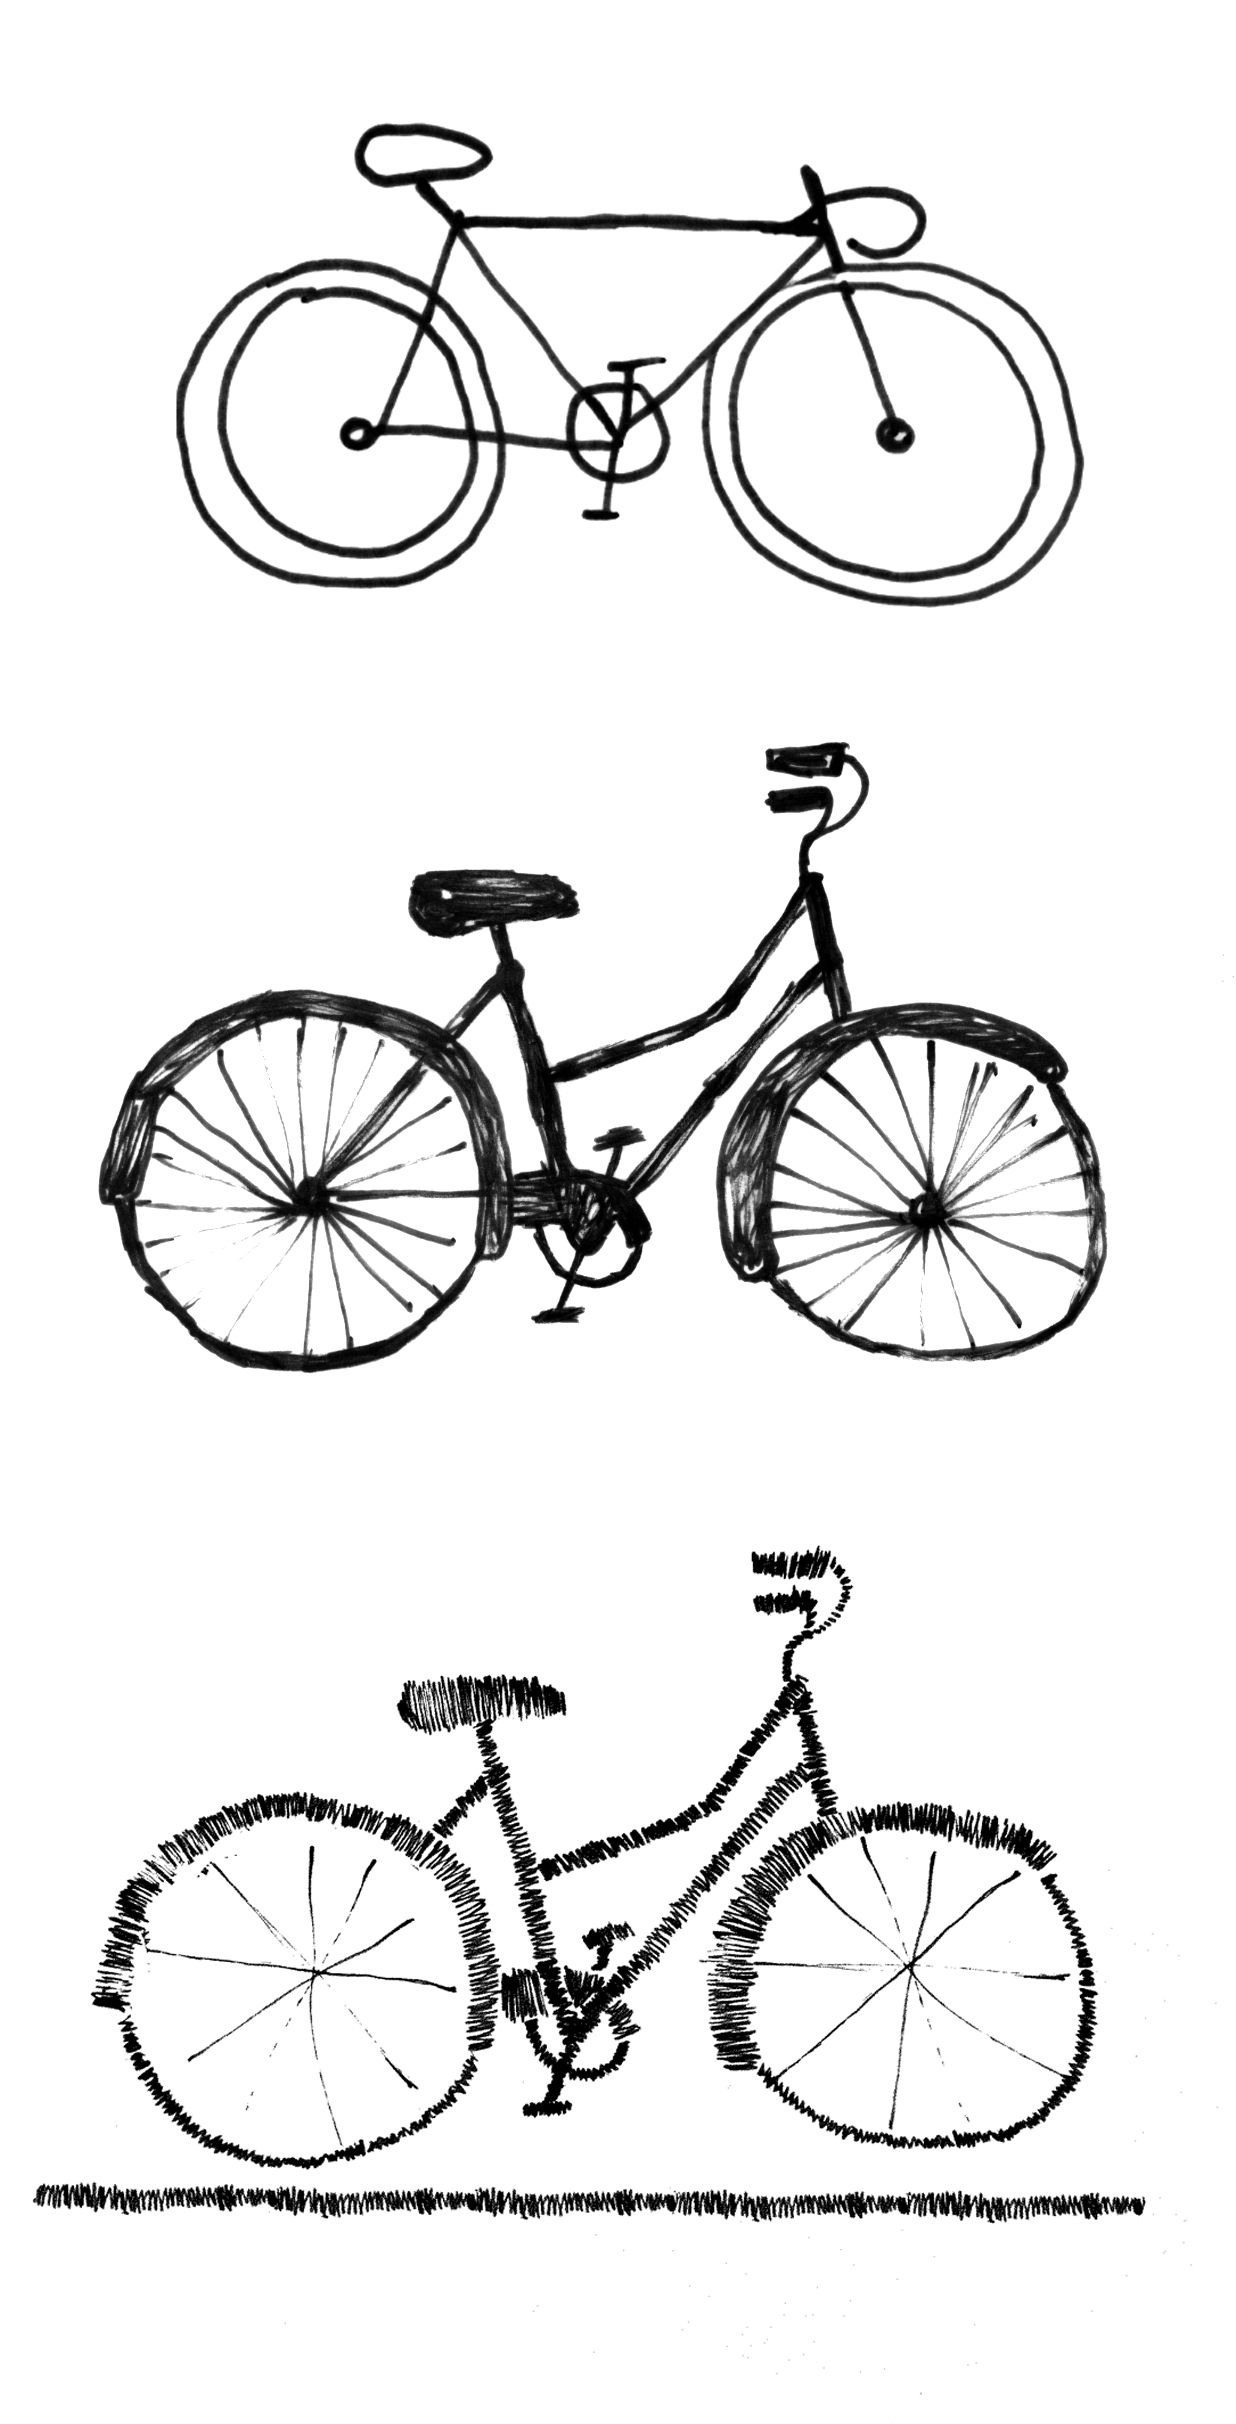 Bicycle Sketches Bicycle Sketch Bicycle Illustration Bike Sketch